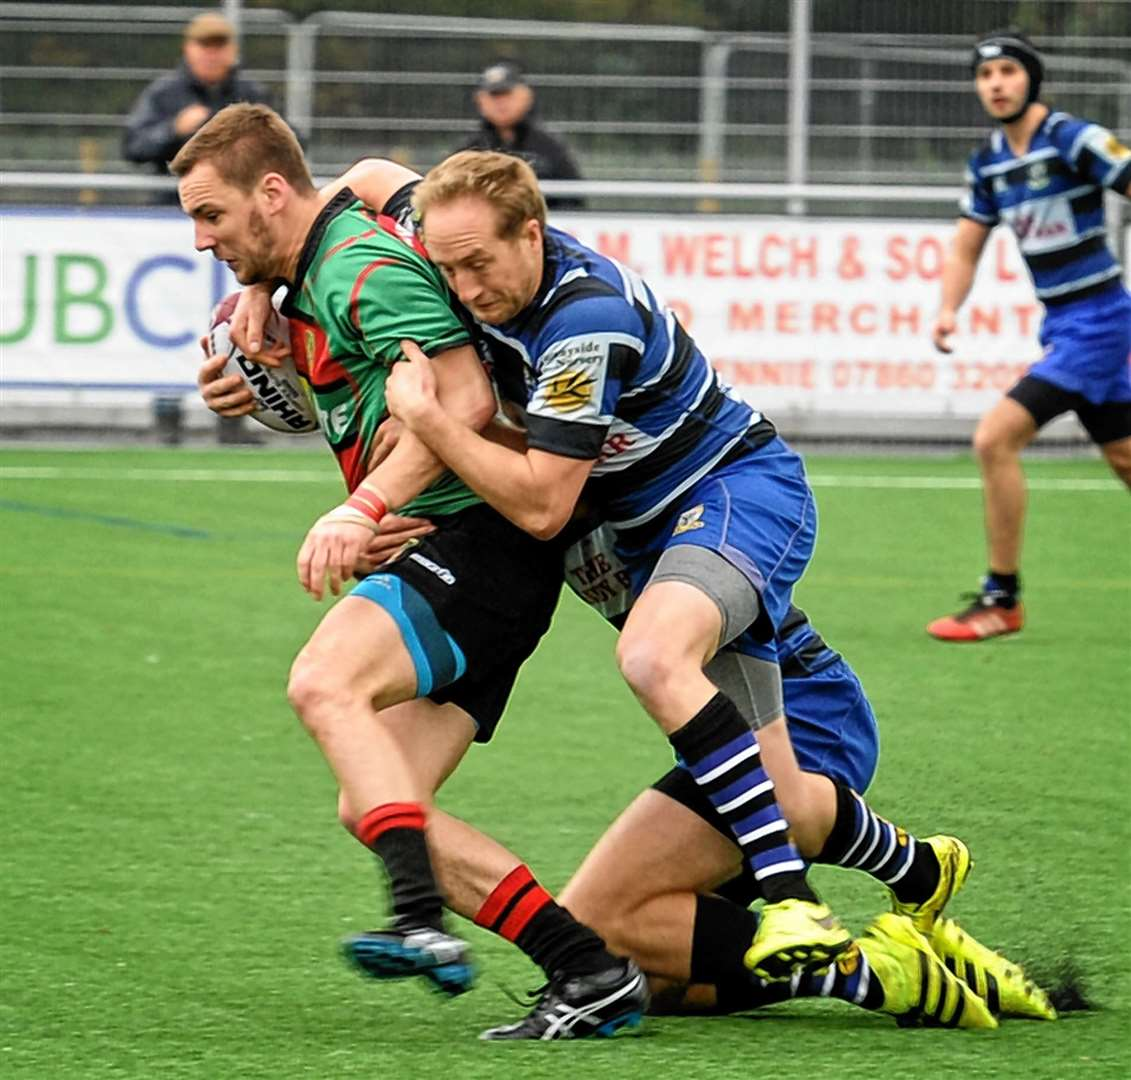 Iain Chisholm remains Highland's only injury concern for tomorrow's trip to Lasswade.